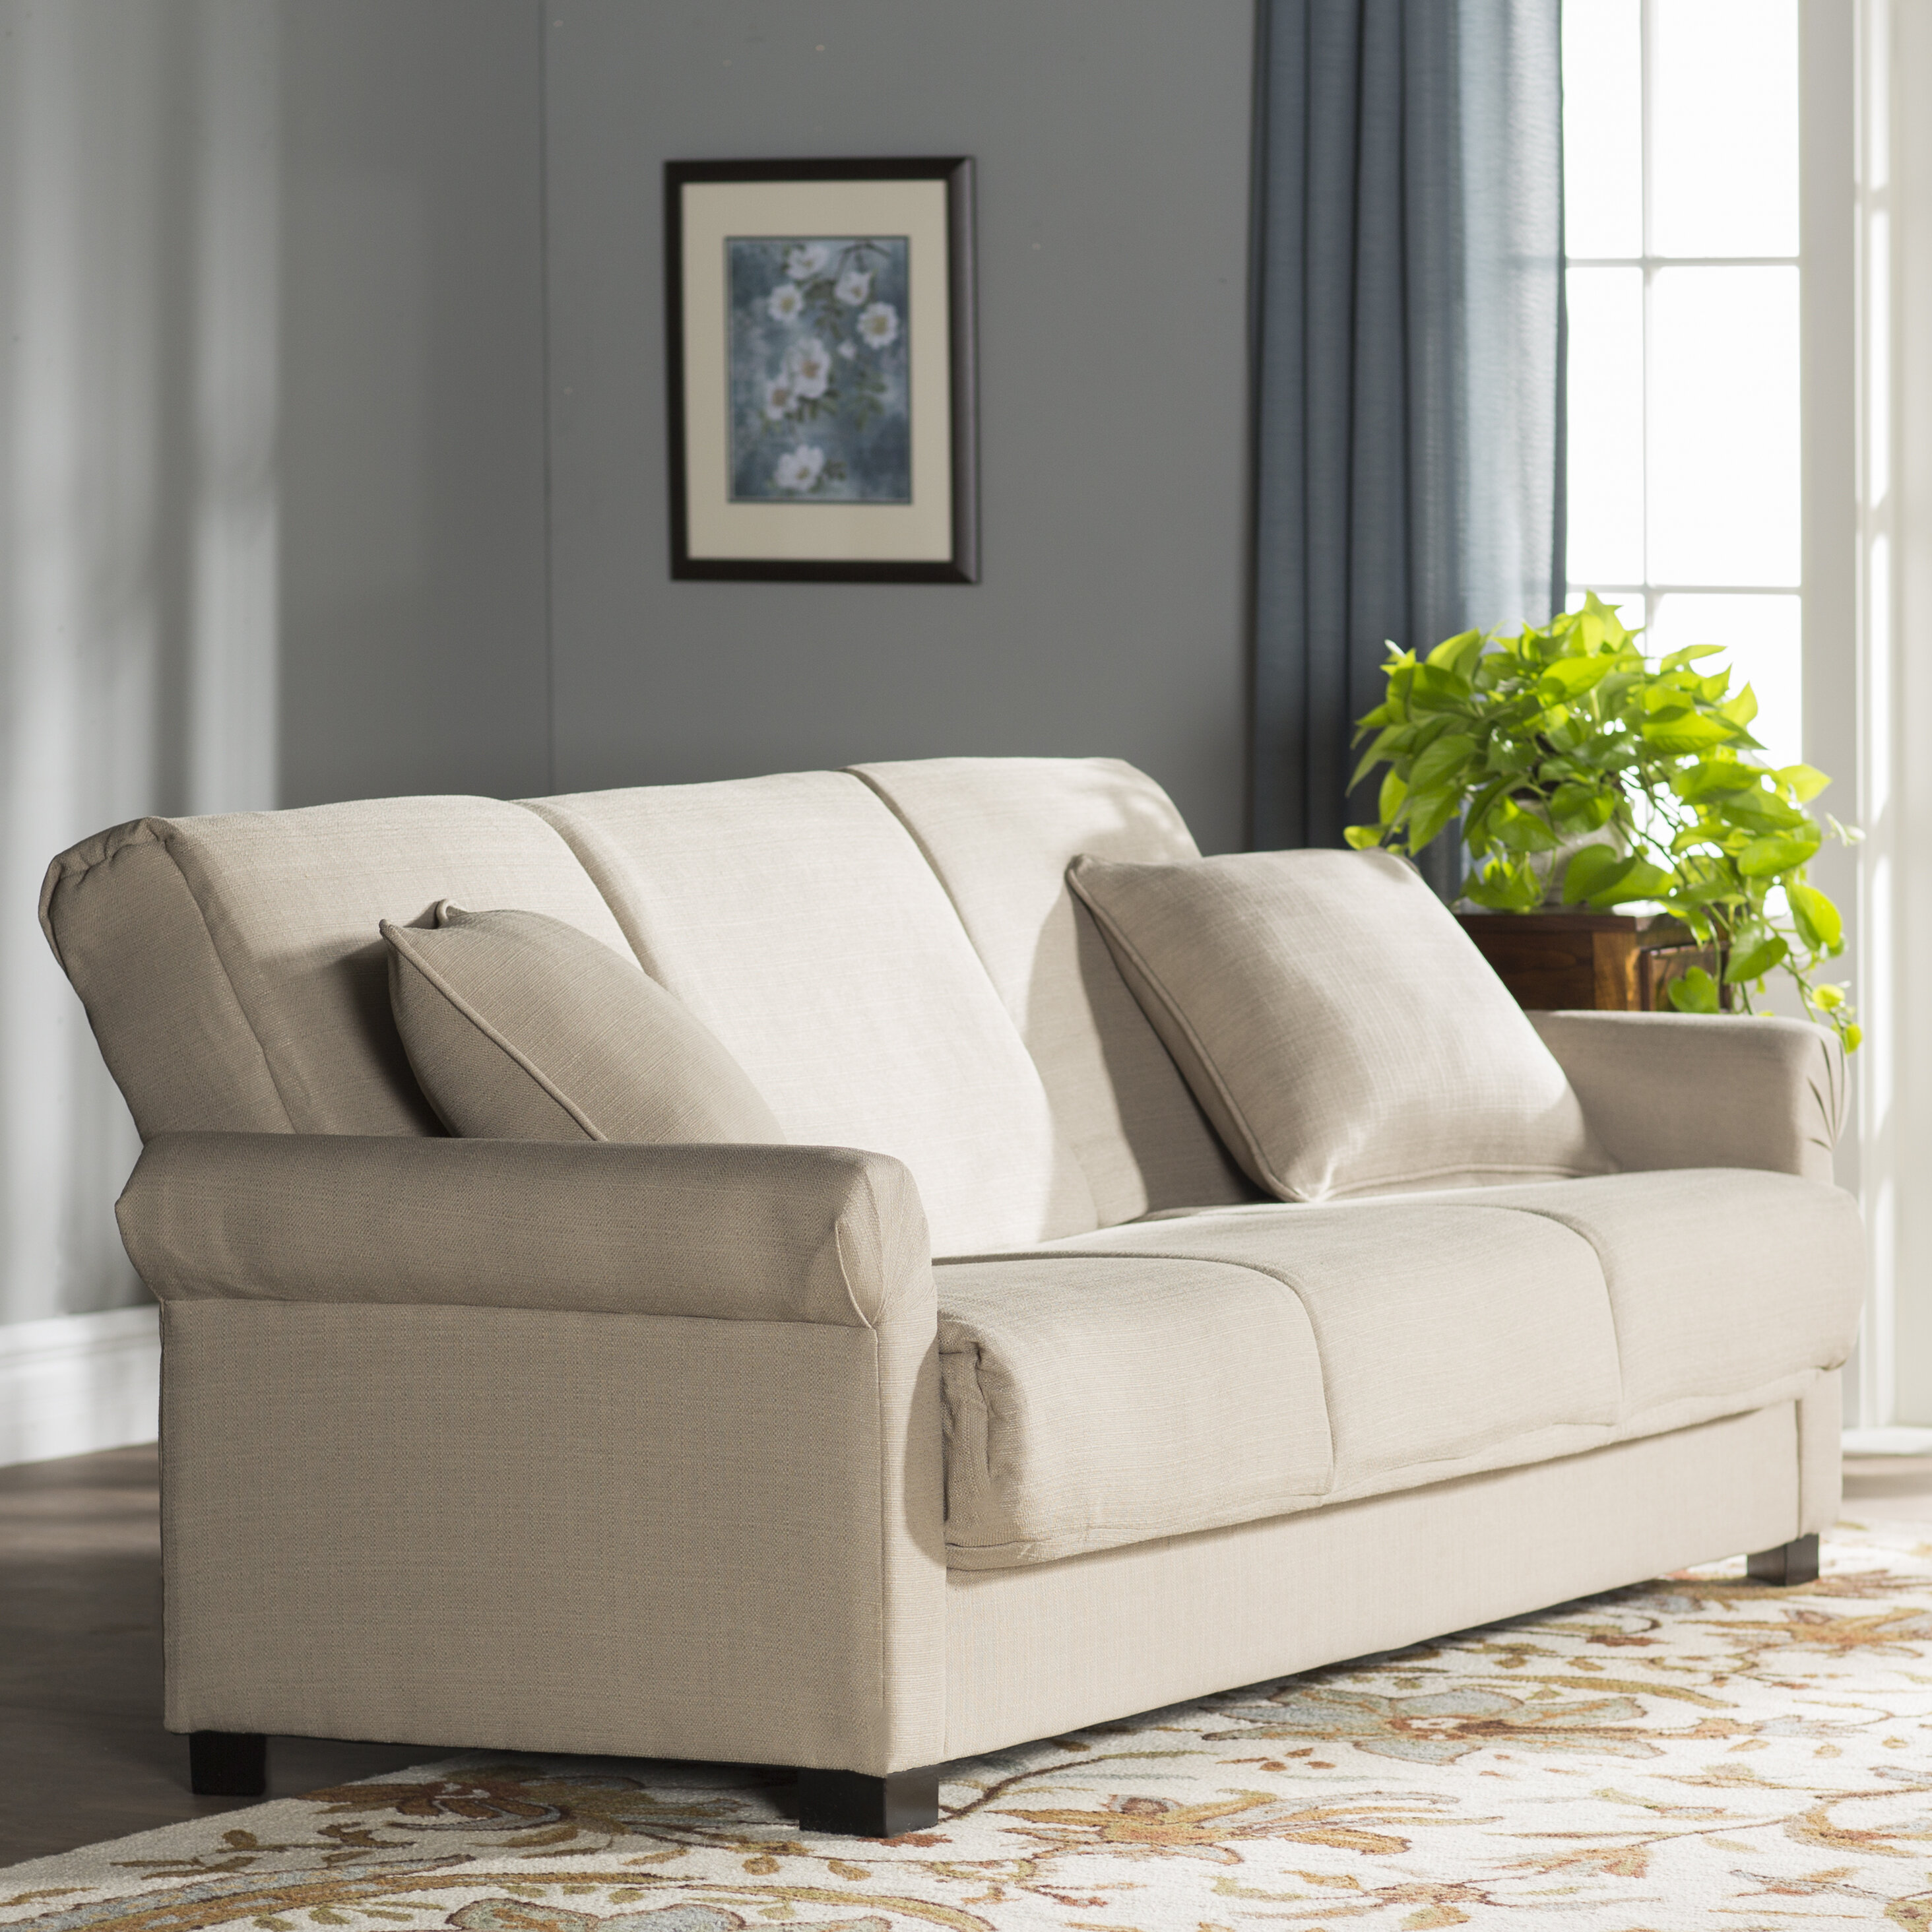 the therapy sleeper sofas sofa full therapys beds apartment best annual top ten guide